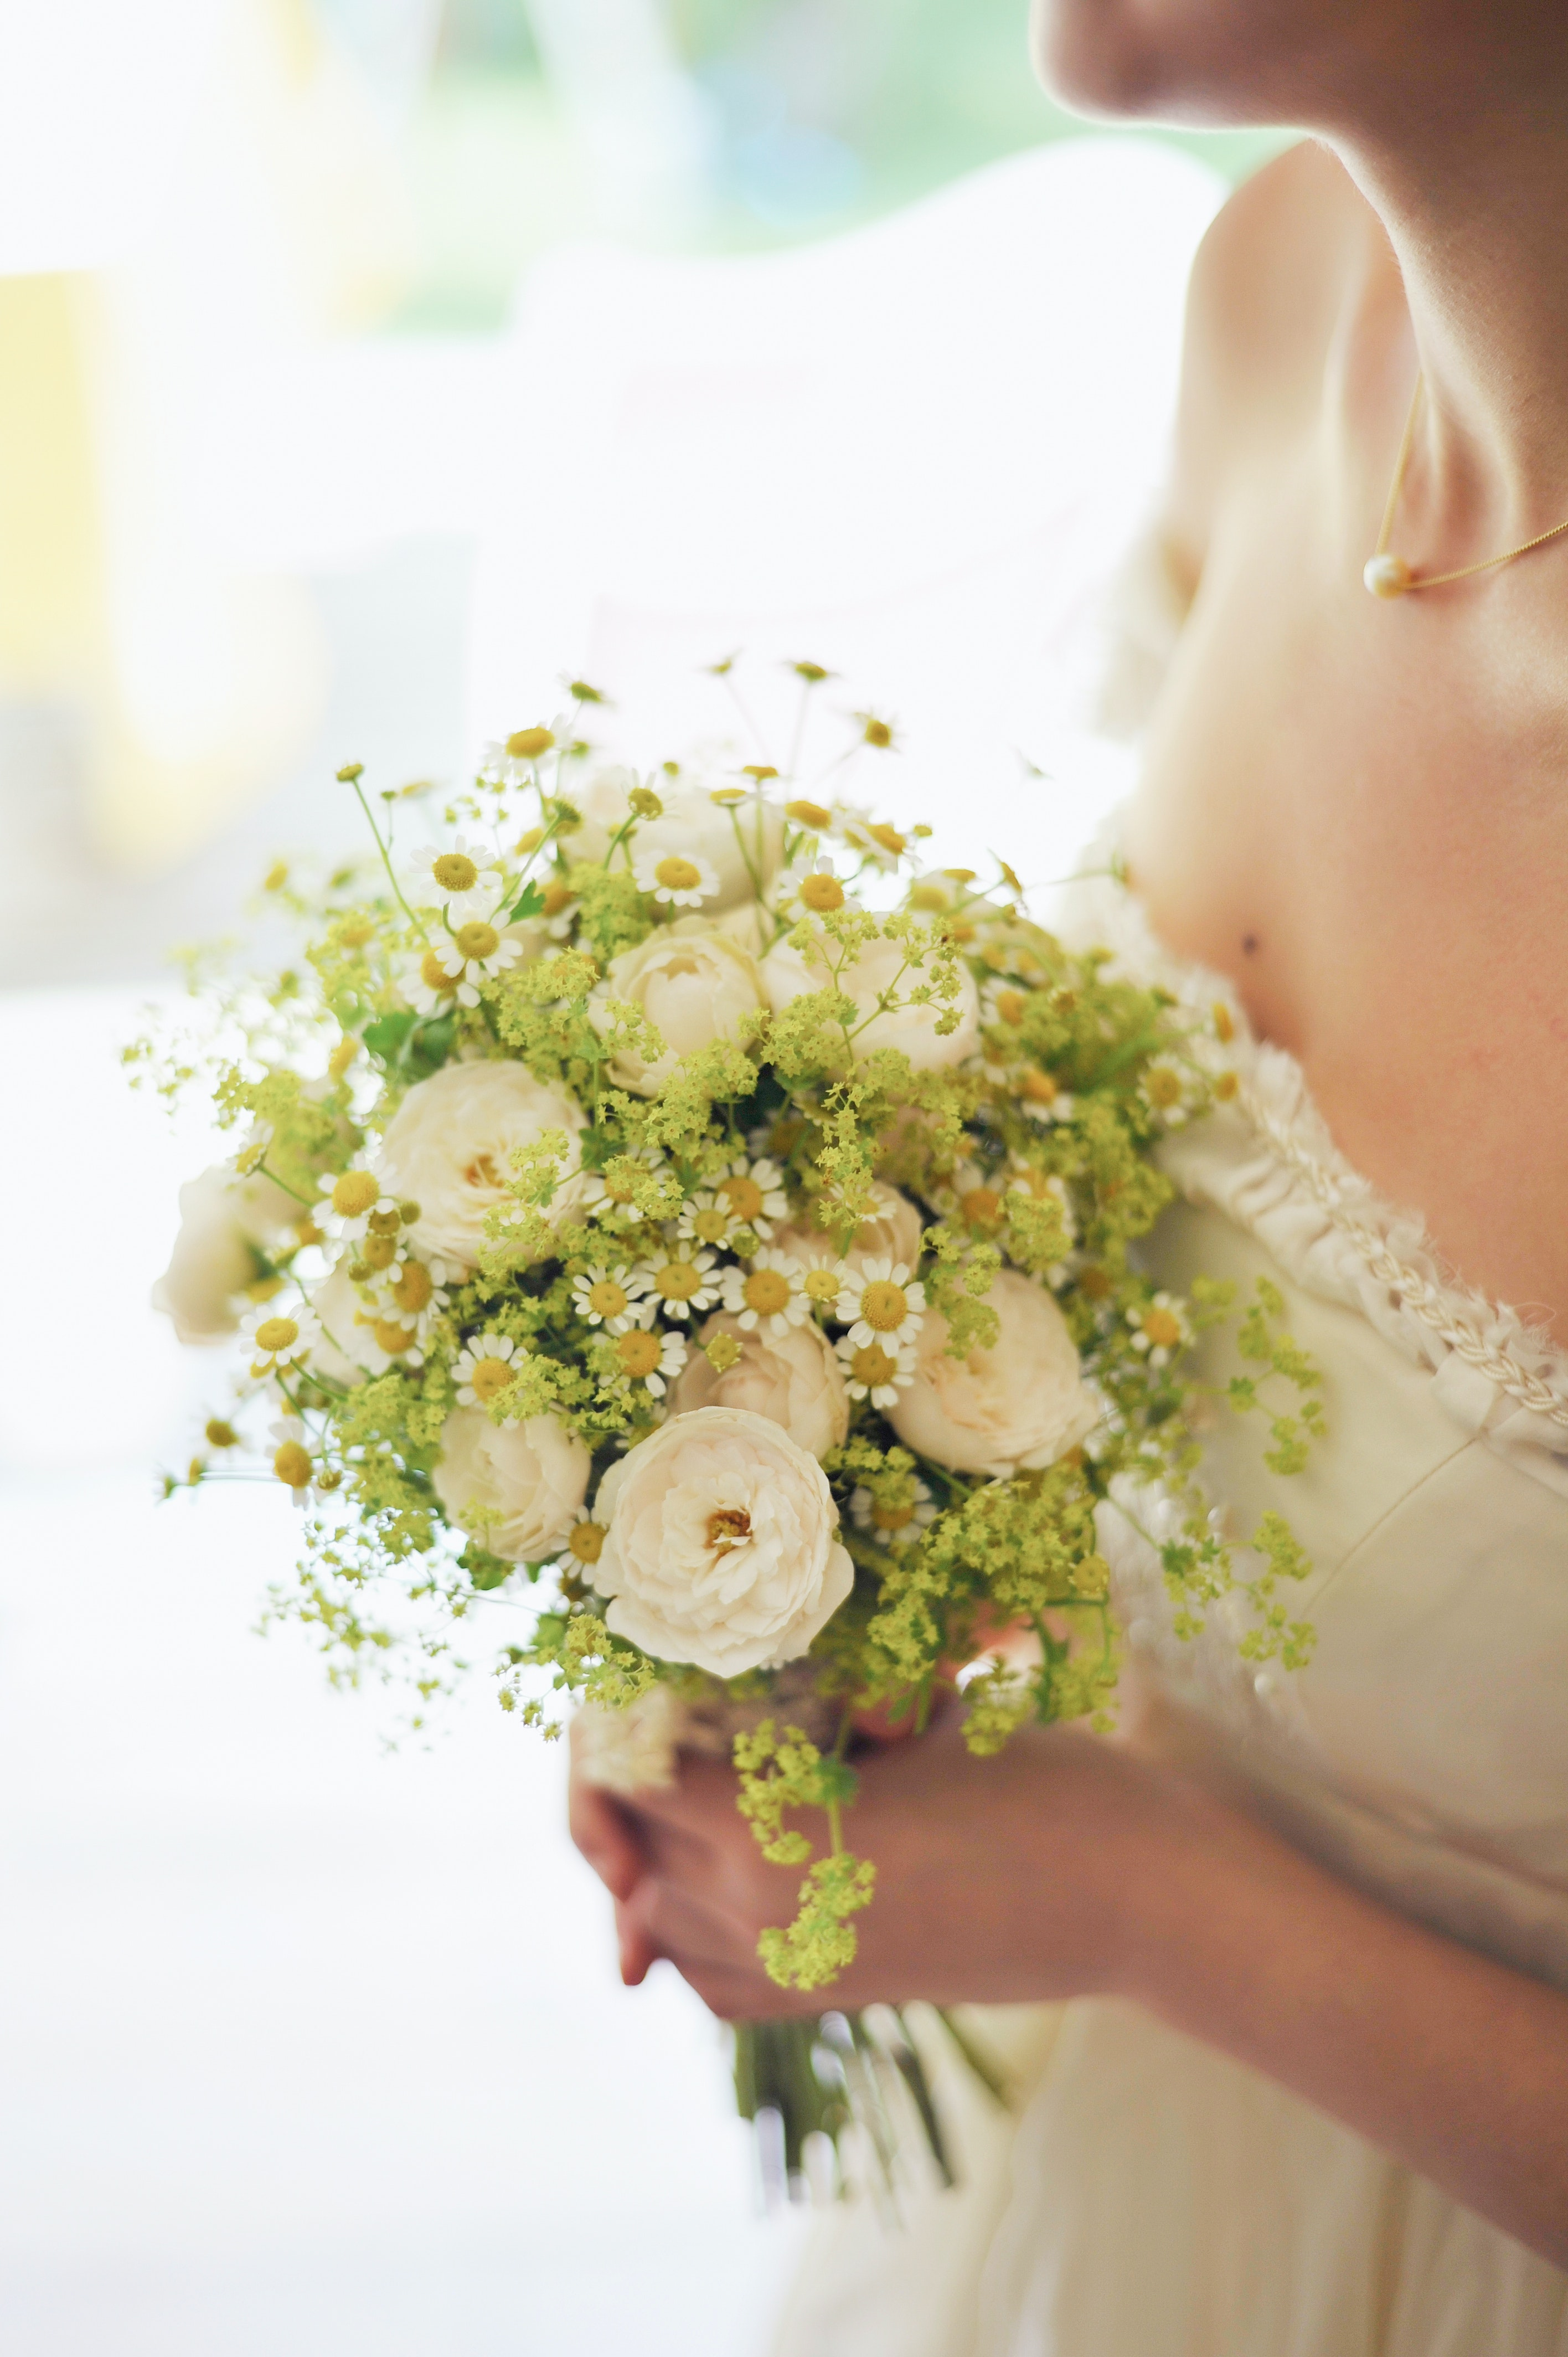 Woman In Bridal Gown Holding Bouquet Of White Flowers Free Stock Photo